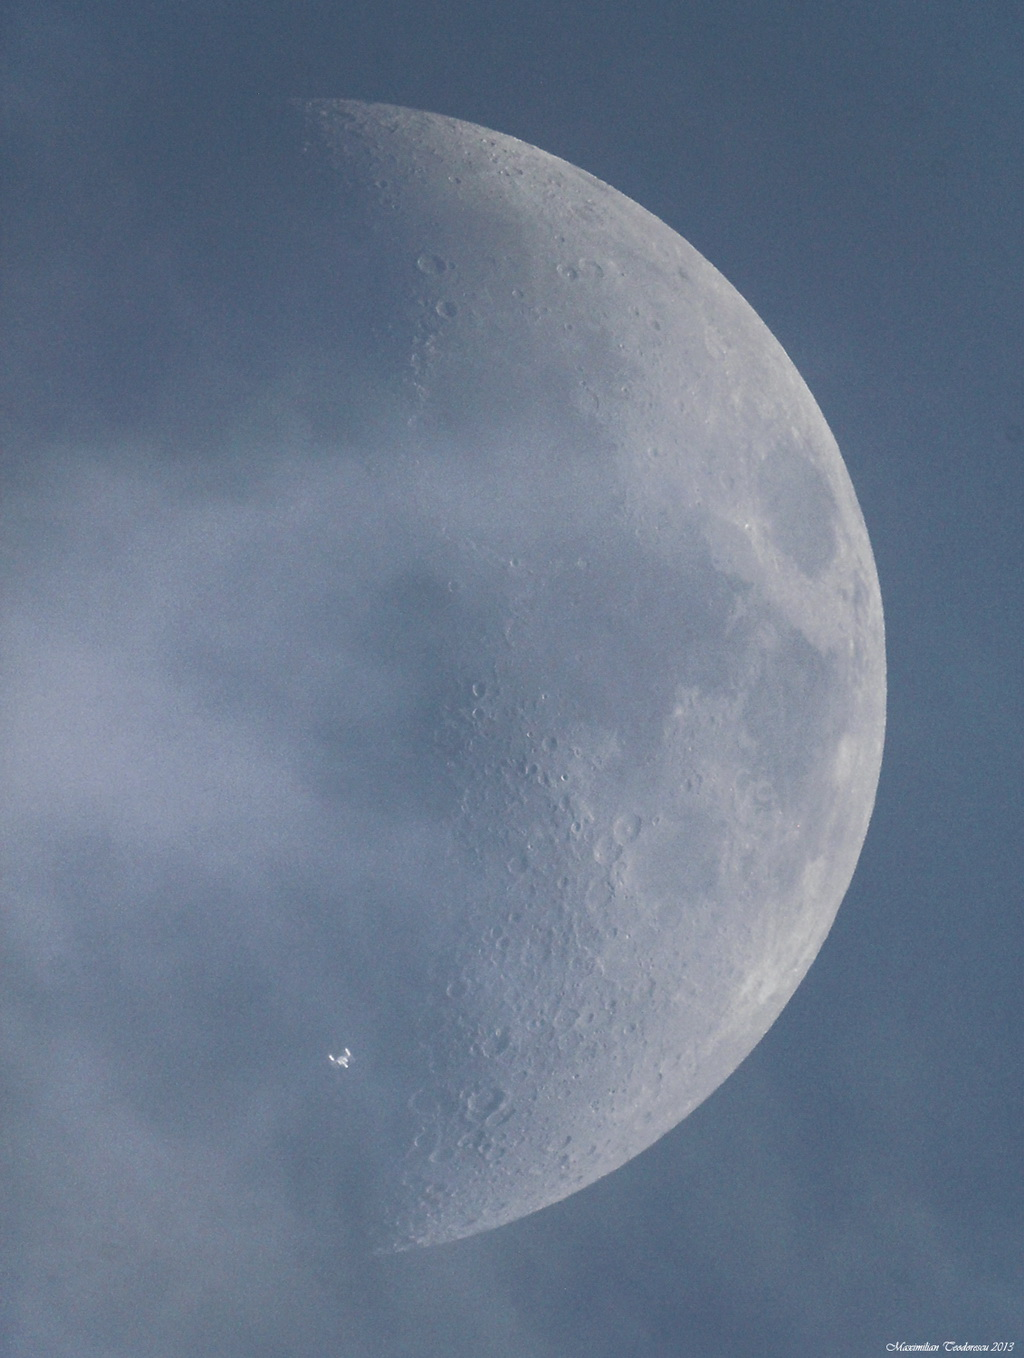 iss-transiting-the-moon Transiting the moon makes the ISS look like the Enterprise Exposure